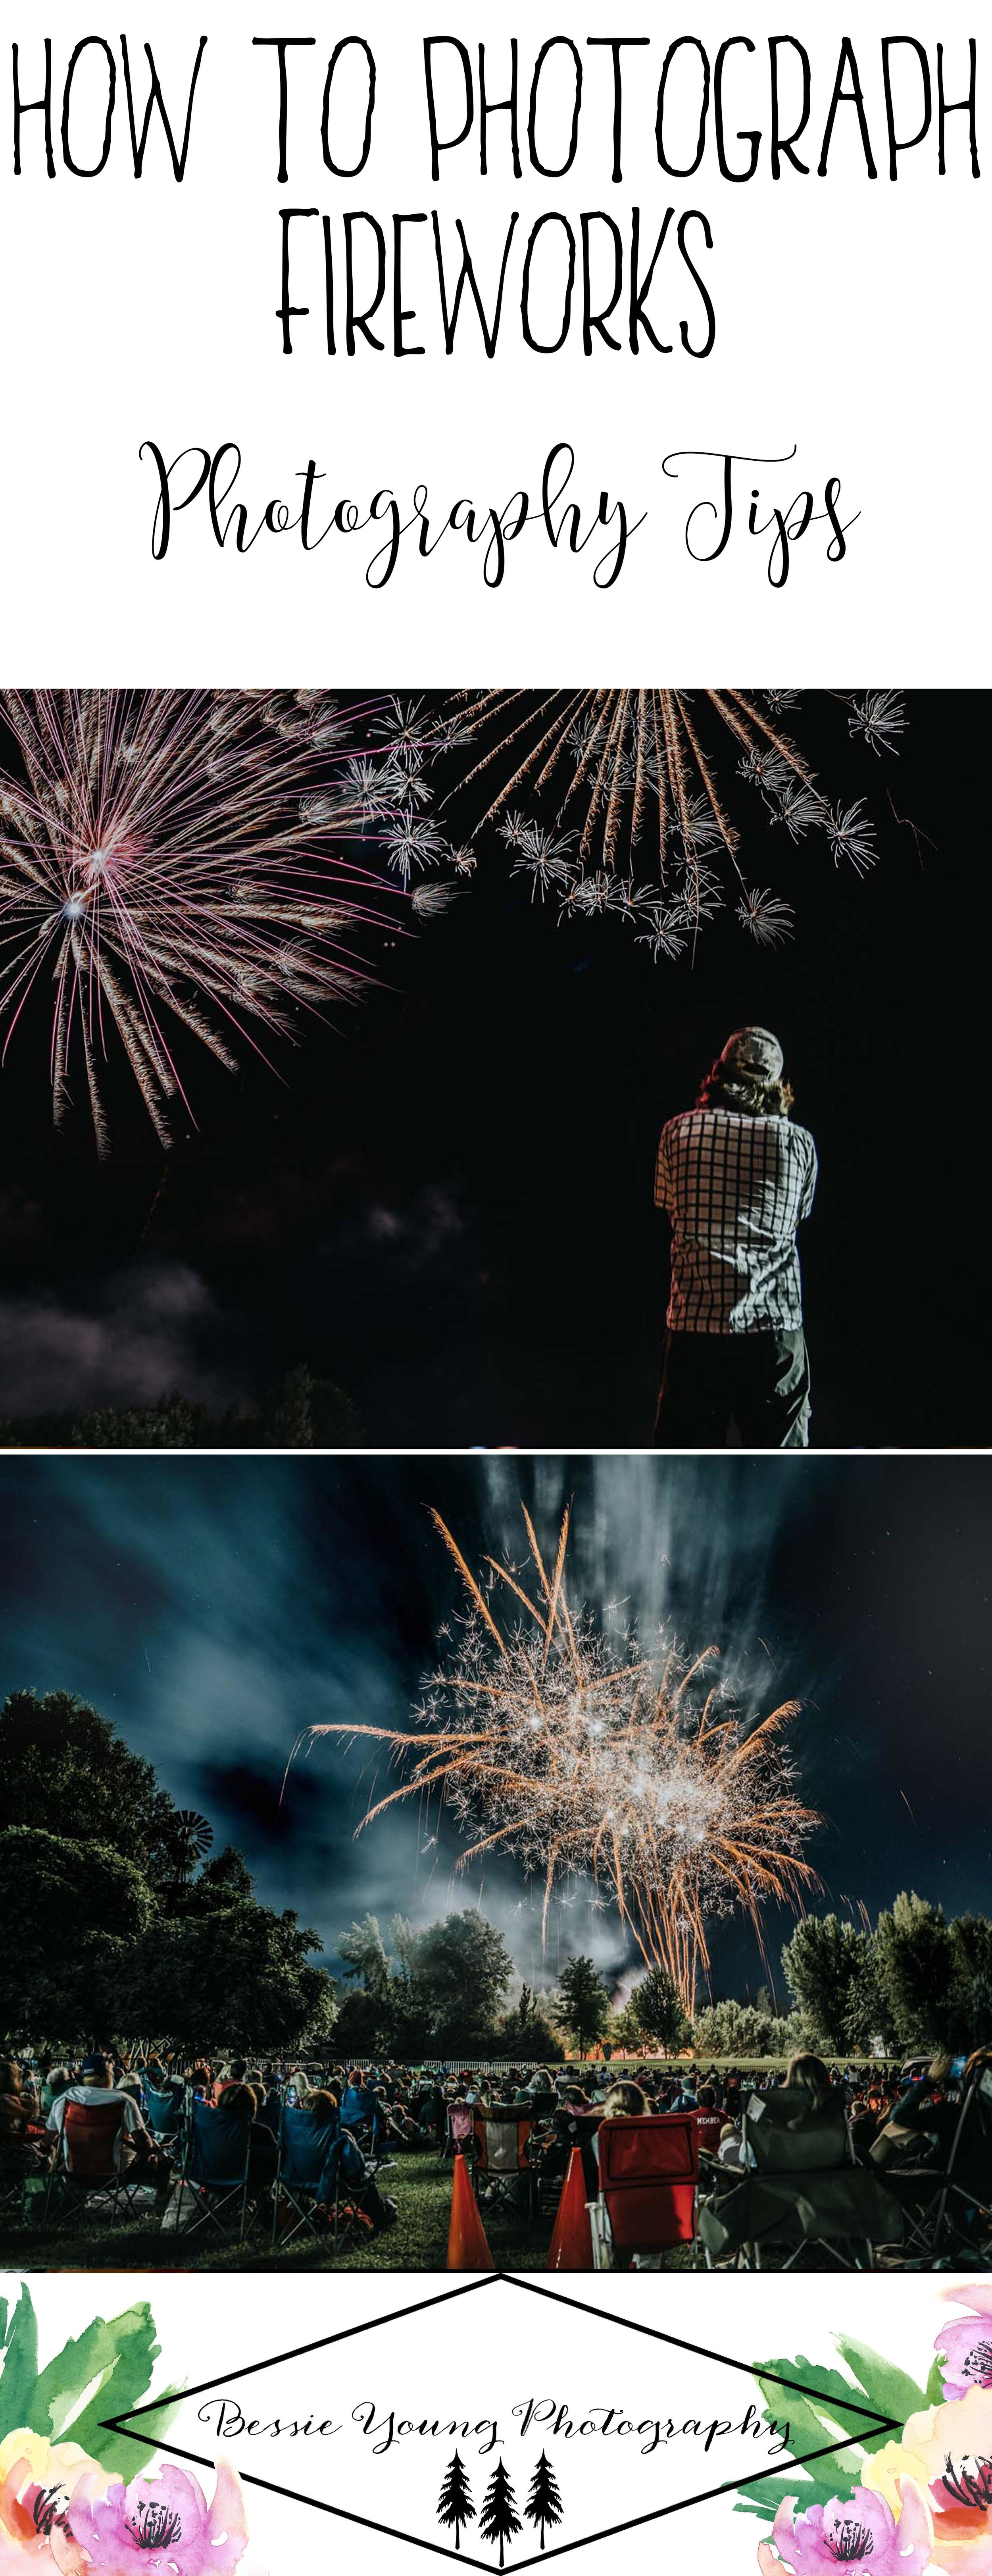 How to Photograph Fireworks by Bessie Young Photography - Photography tips and tricks